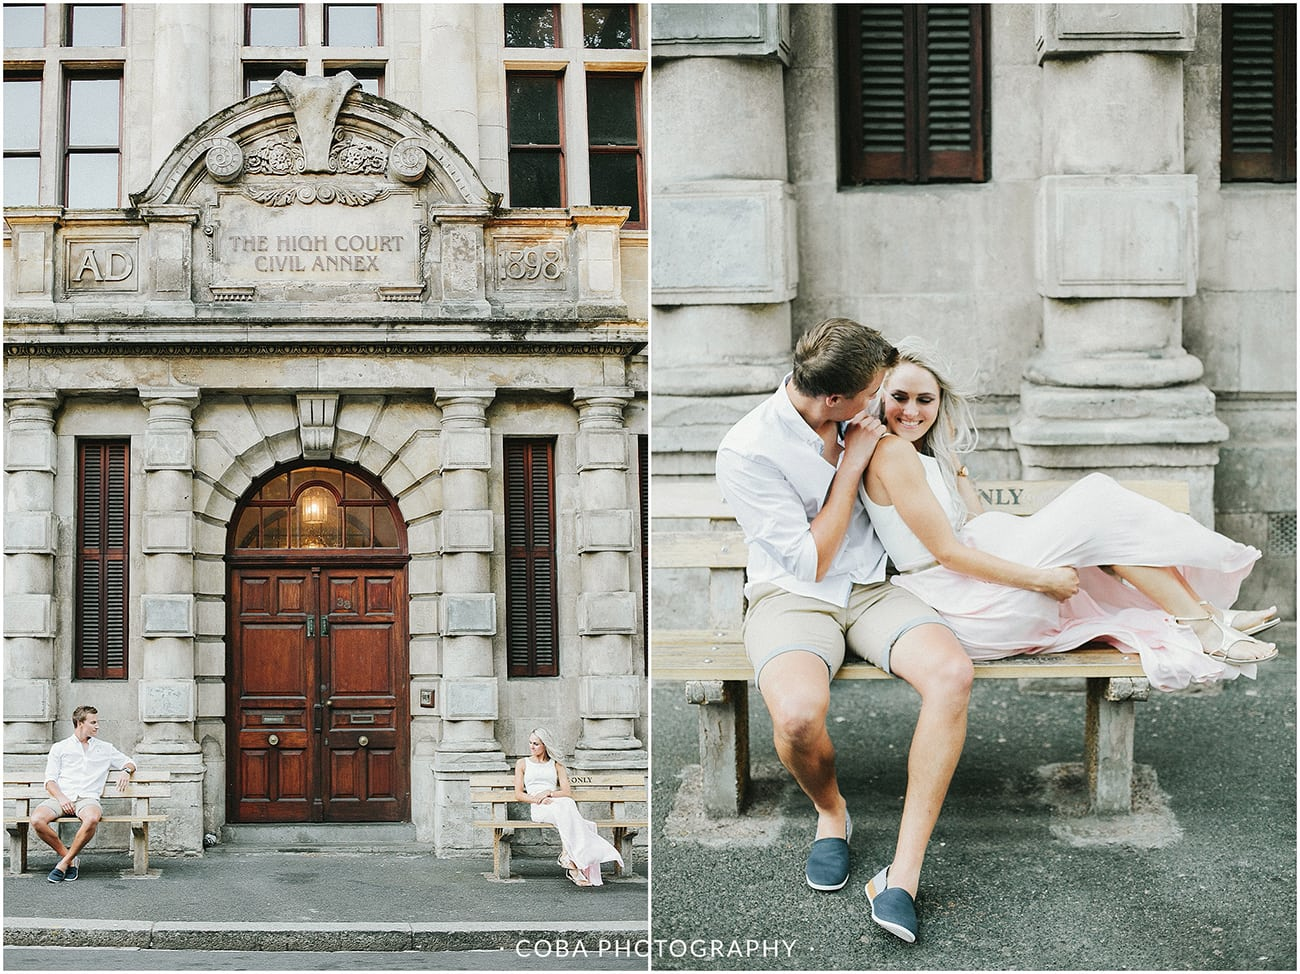 Andre & Tanya - city engagement cape town - coba photography (20)